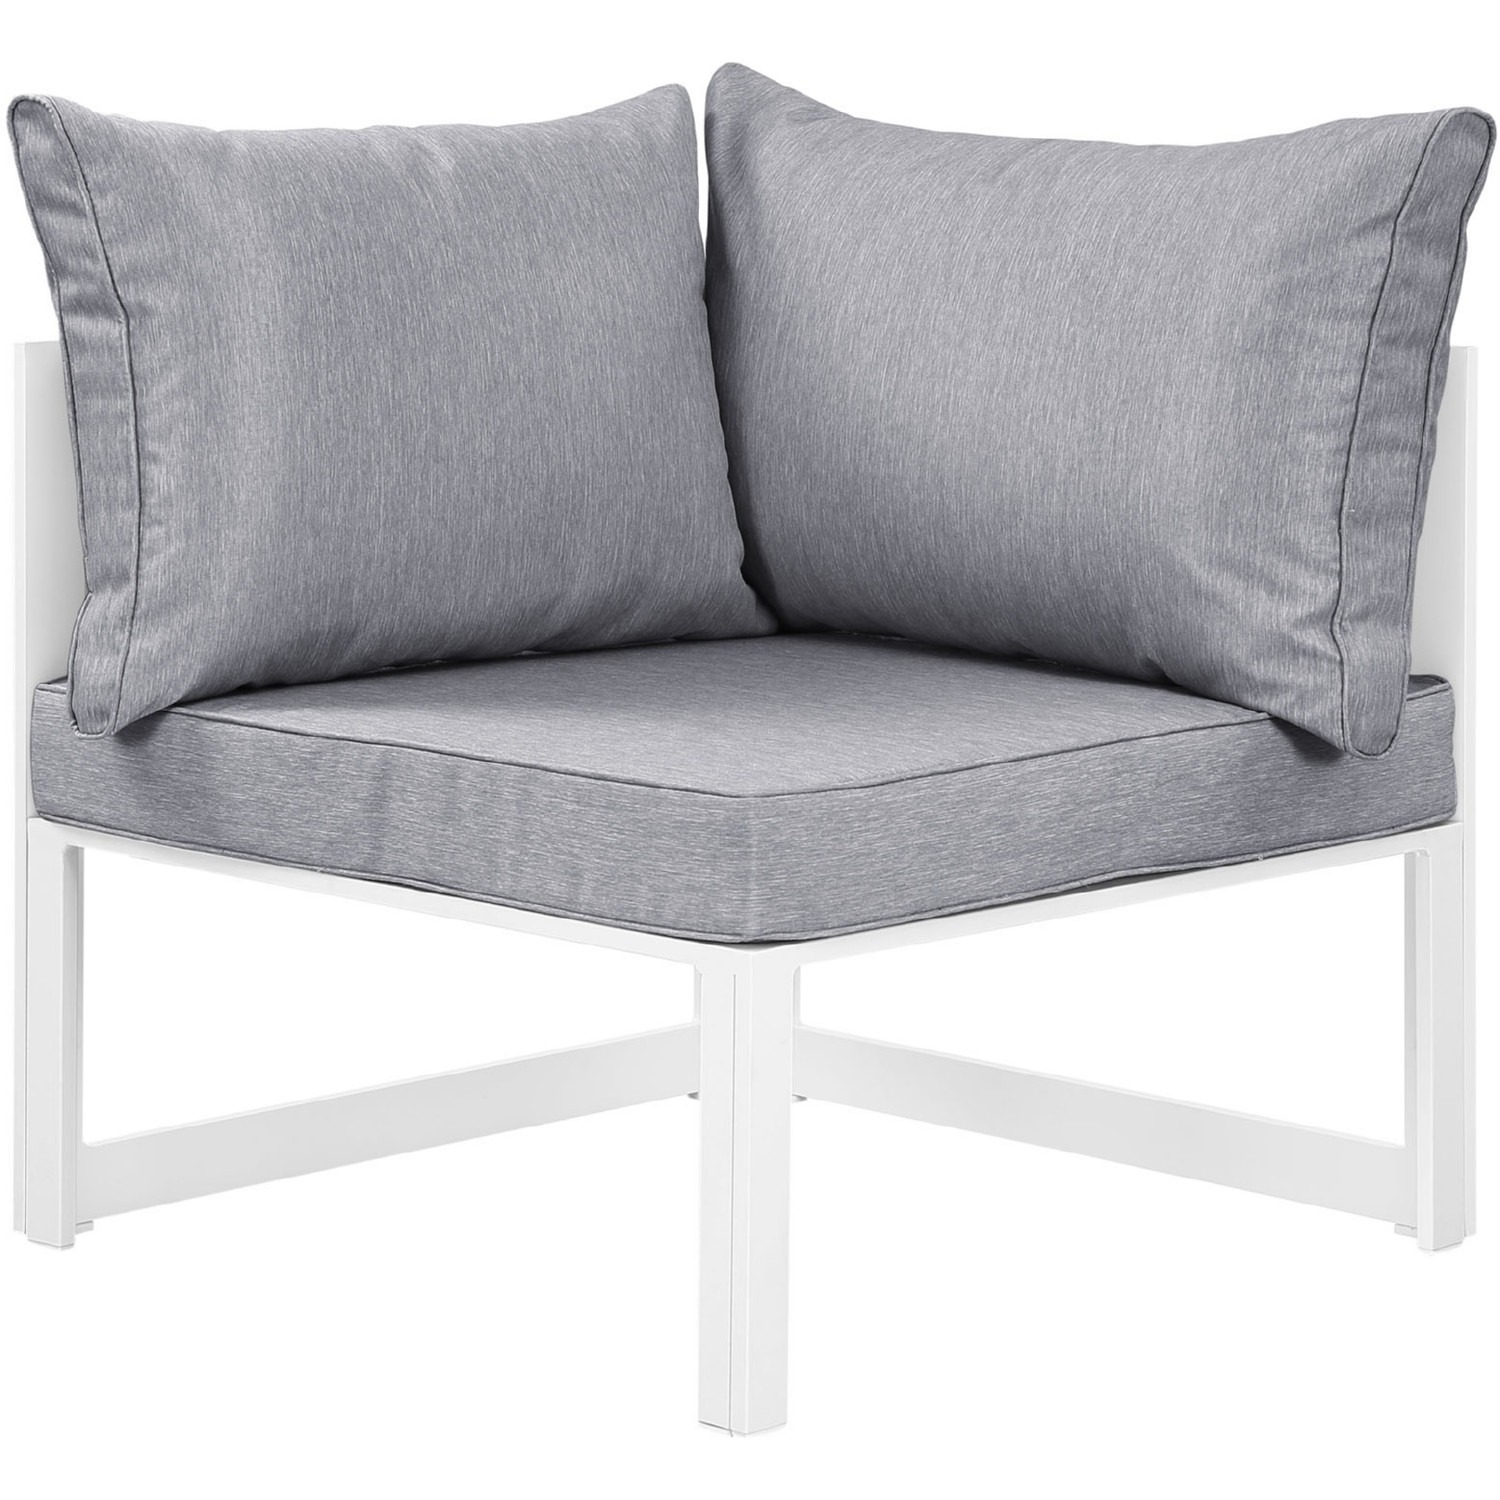 7-Piece Outdoor Sectional In Gray & White Finish - image-3